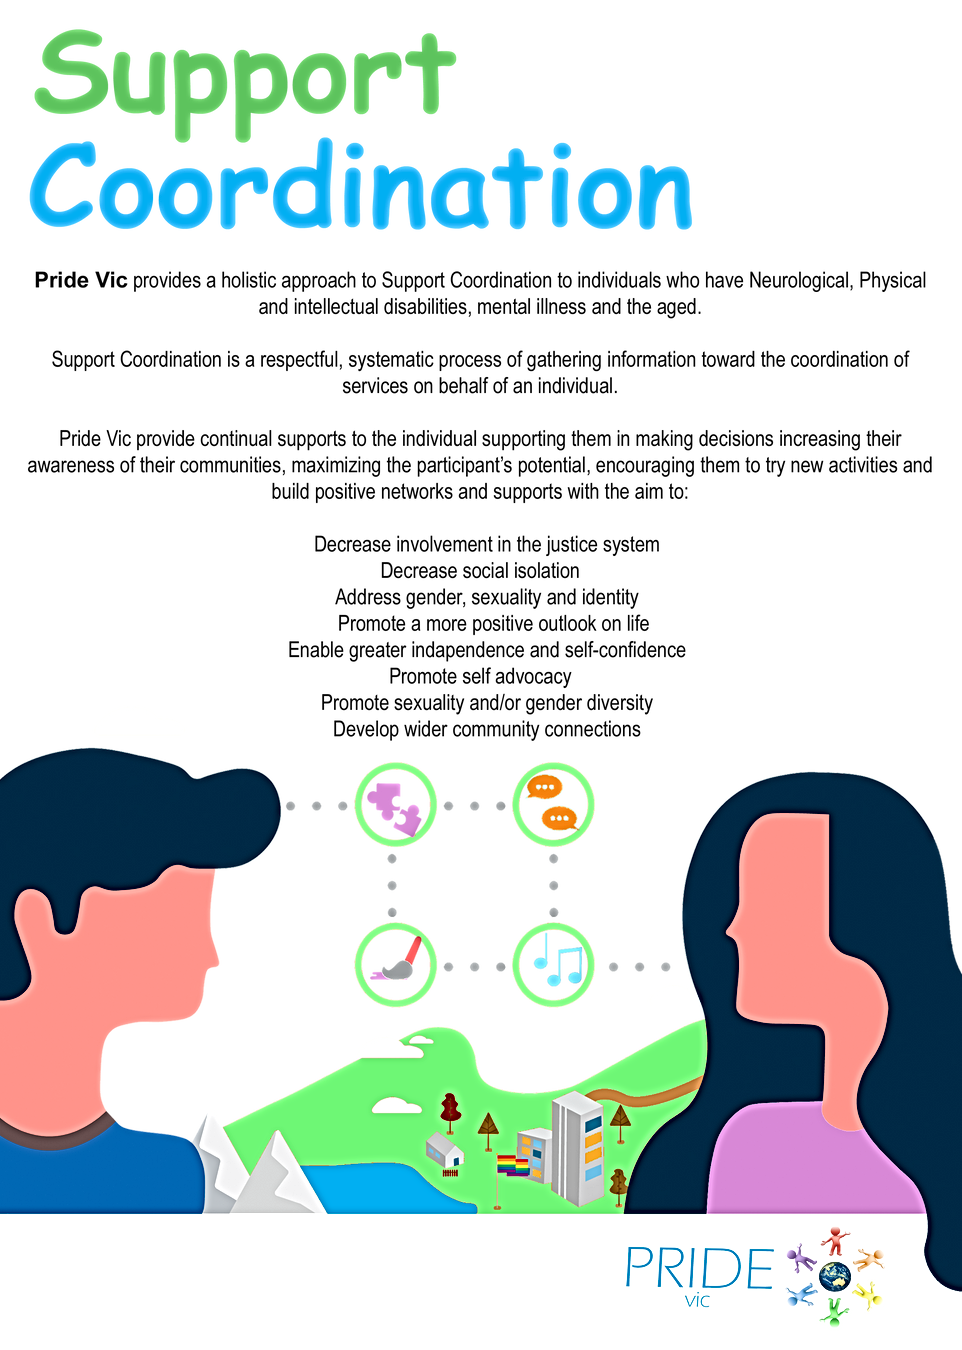 Support Coordination Web Version.png